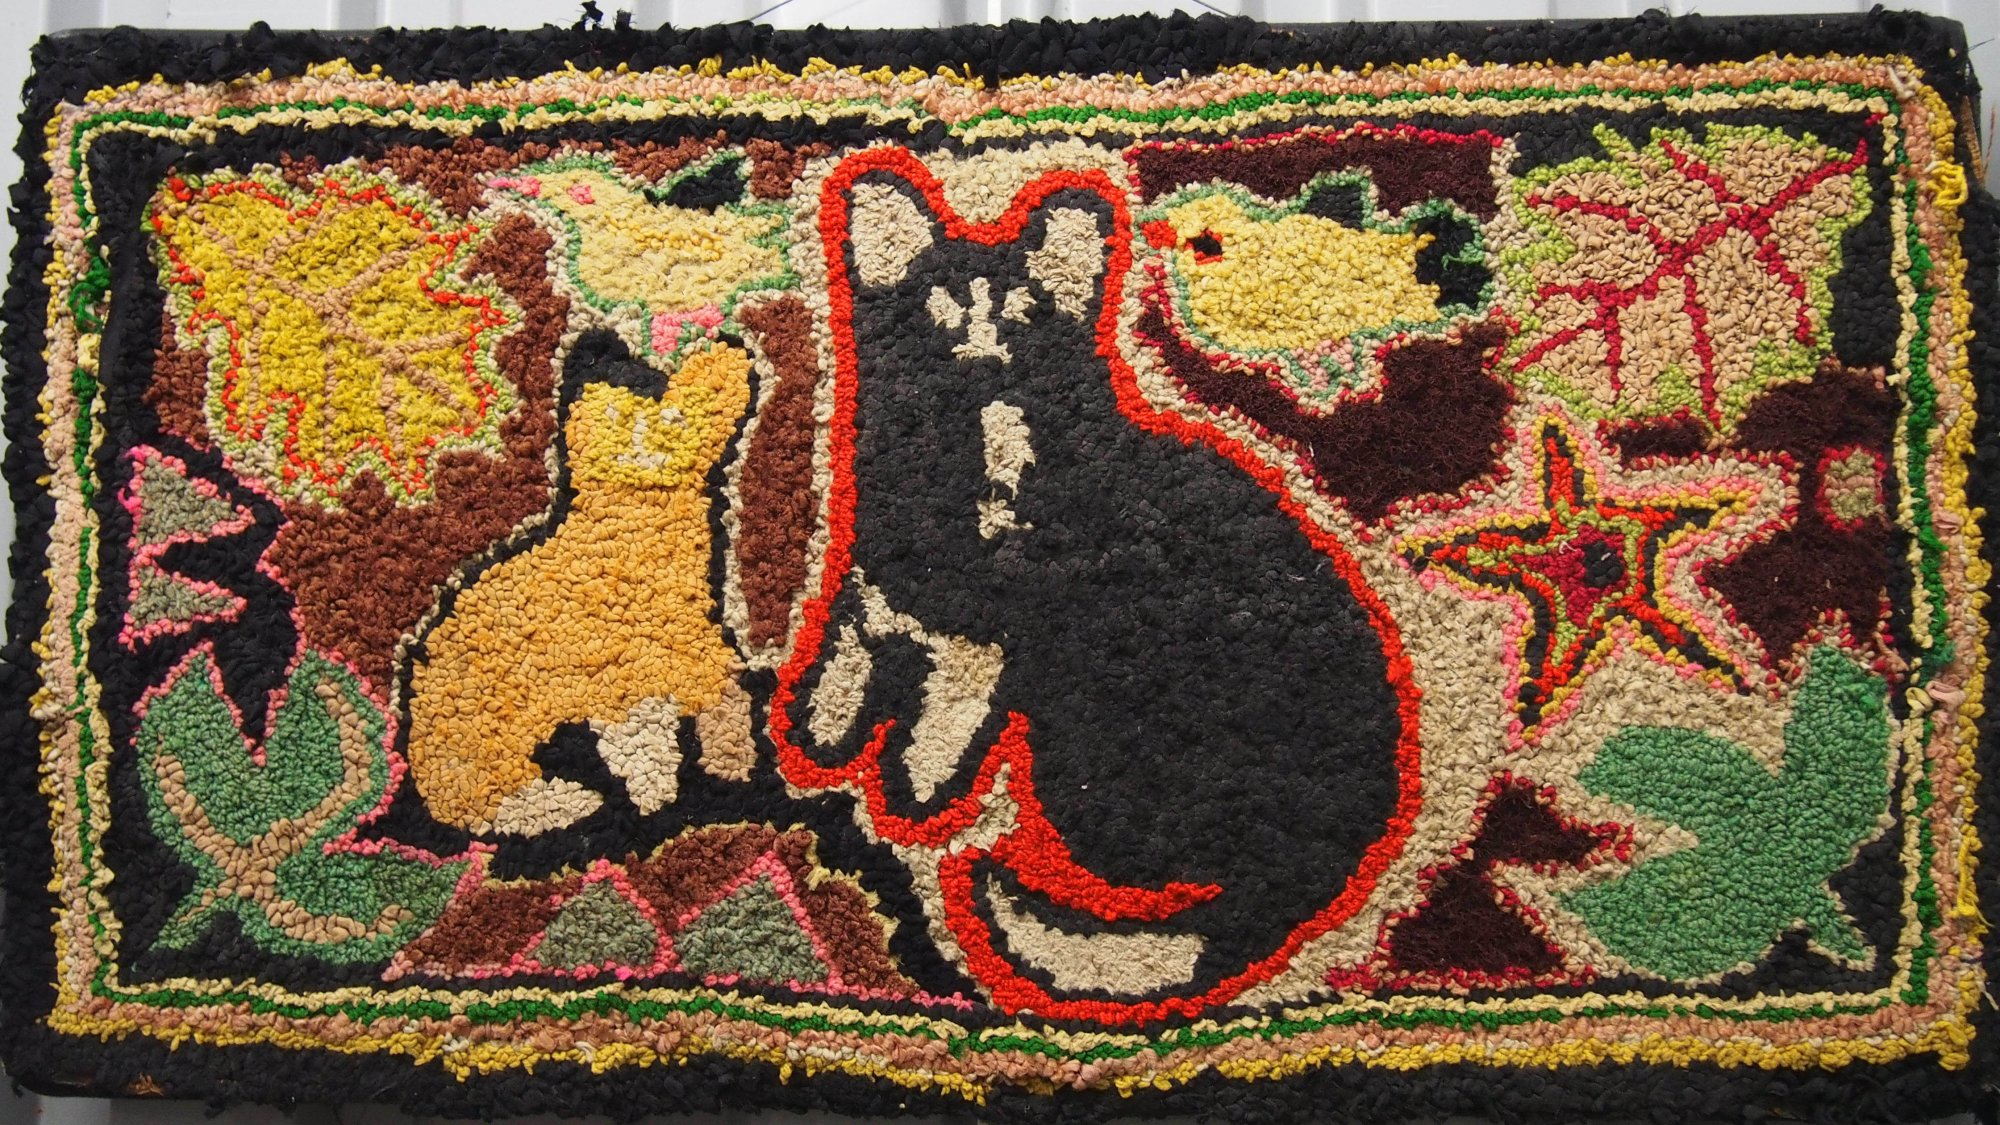 CATS VINTAGE HOOKED RUG